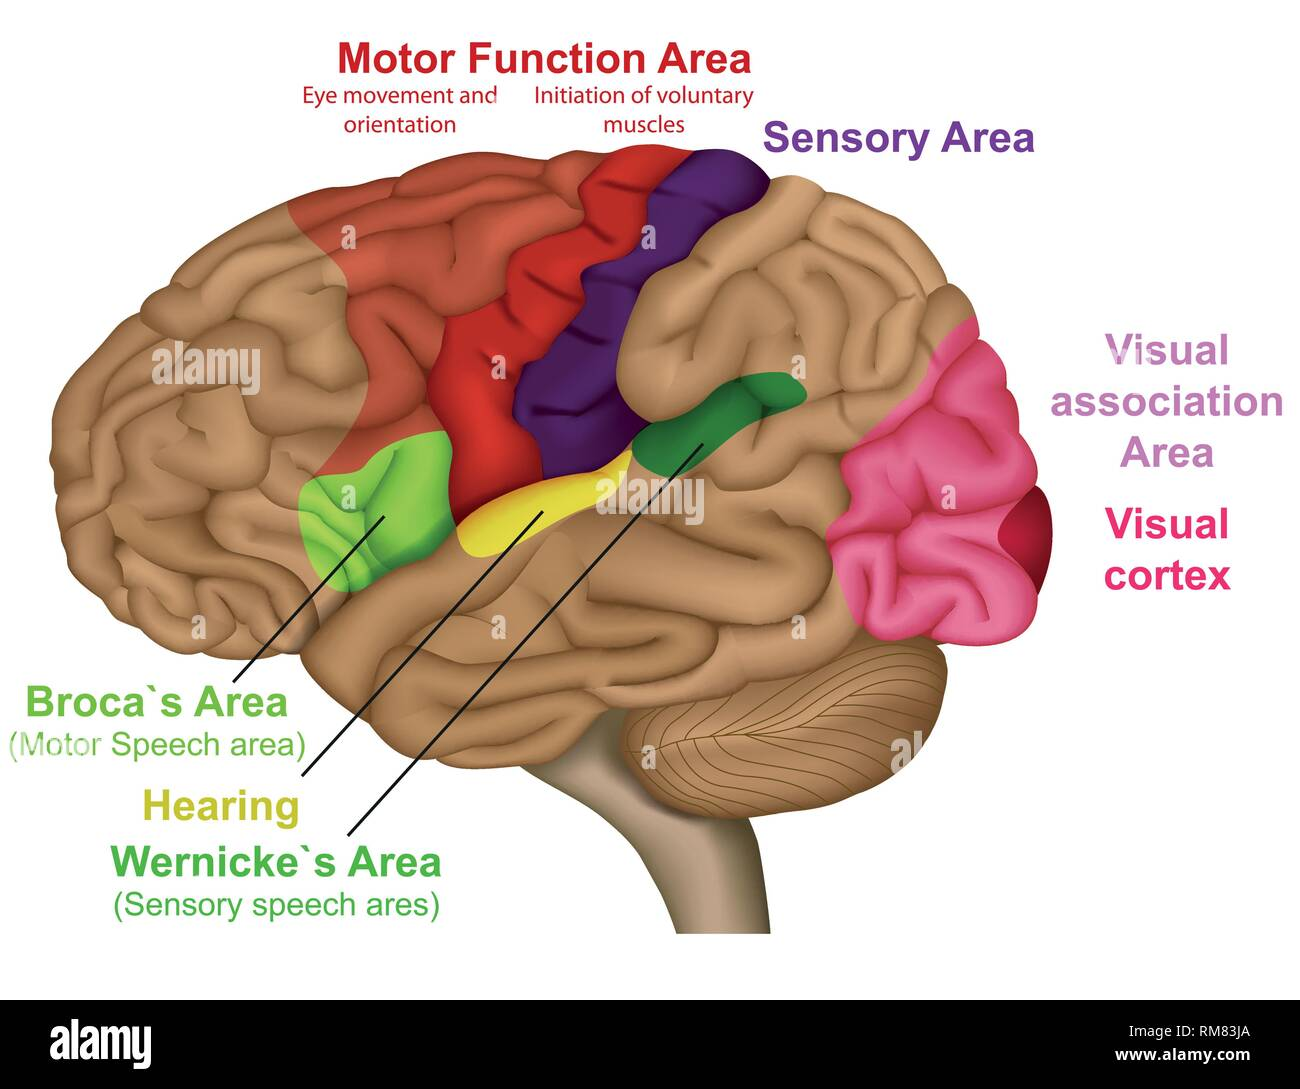 Functional brain areas medical vector illustration on white background - Stock Image